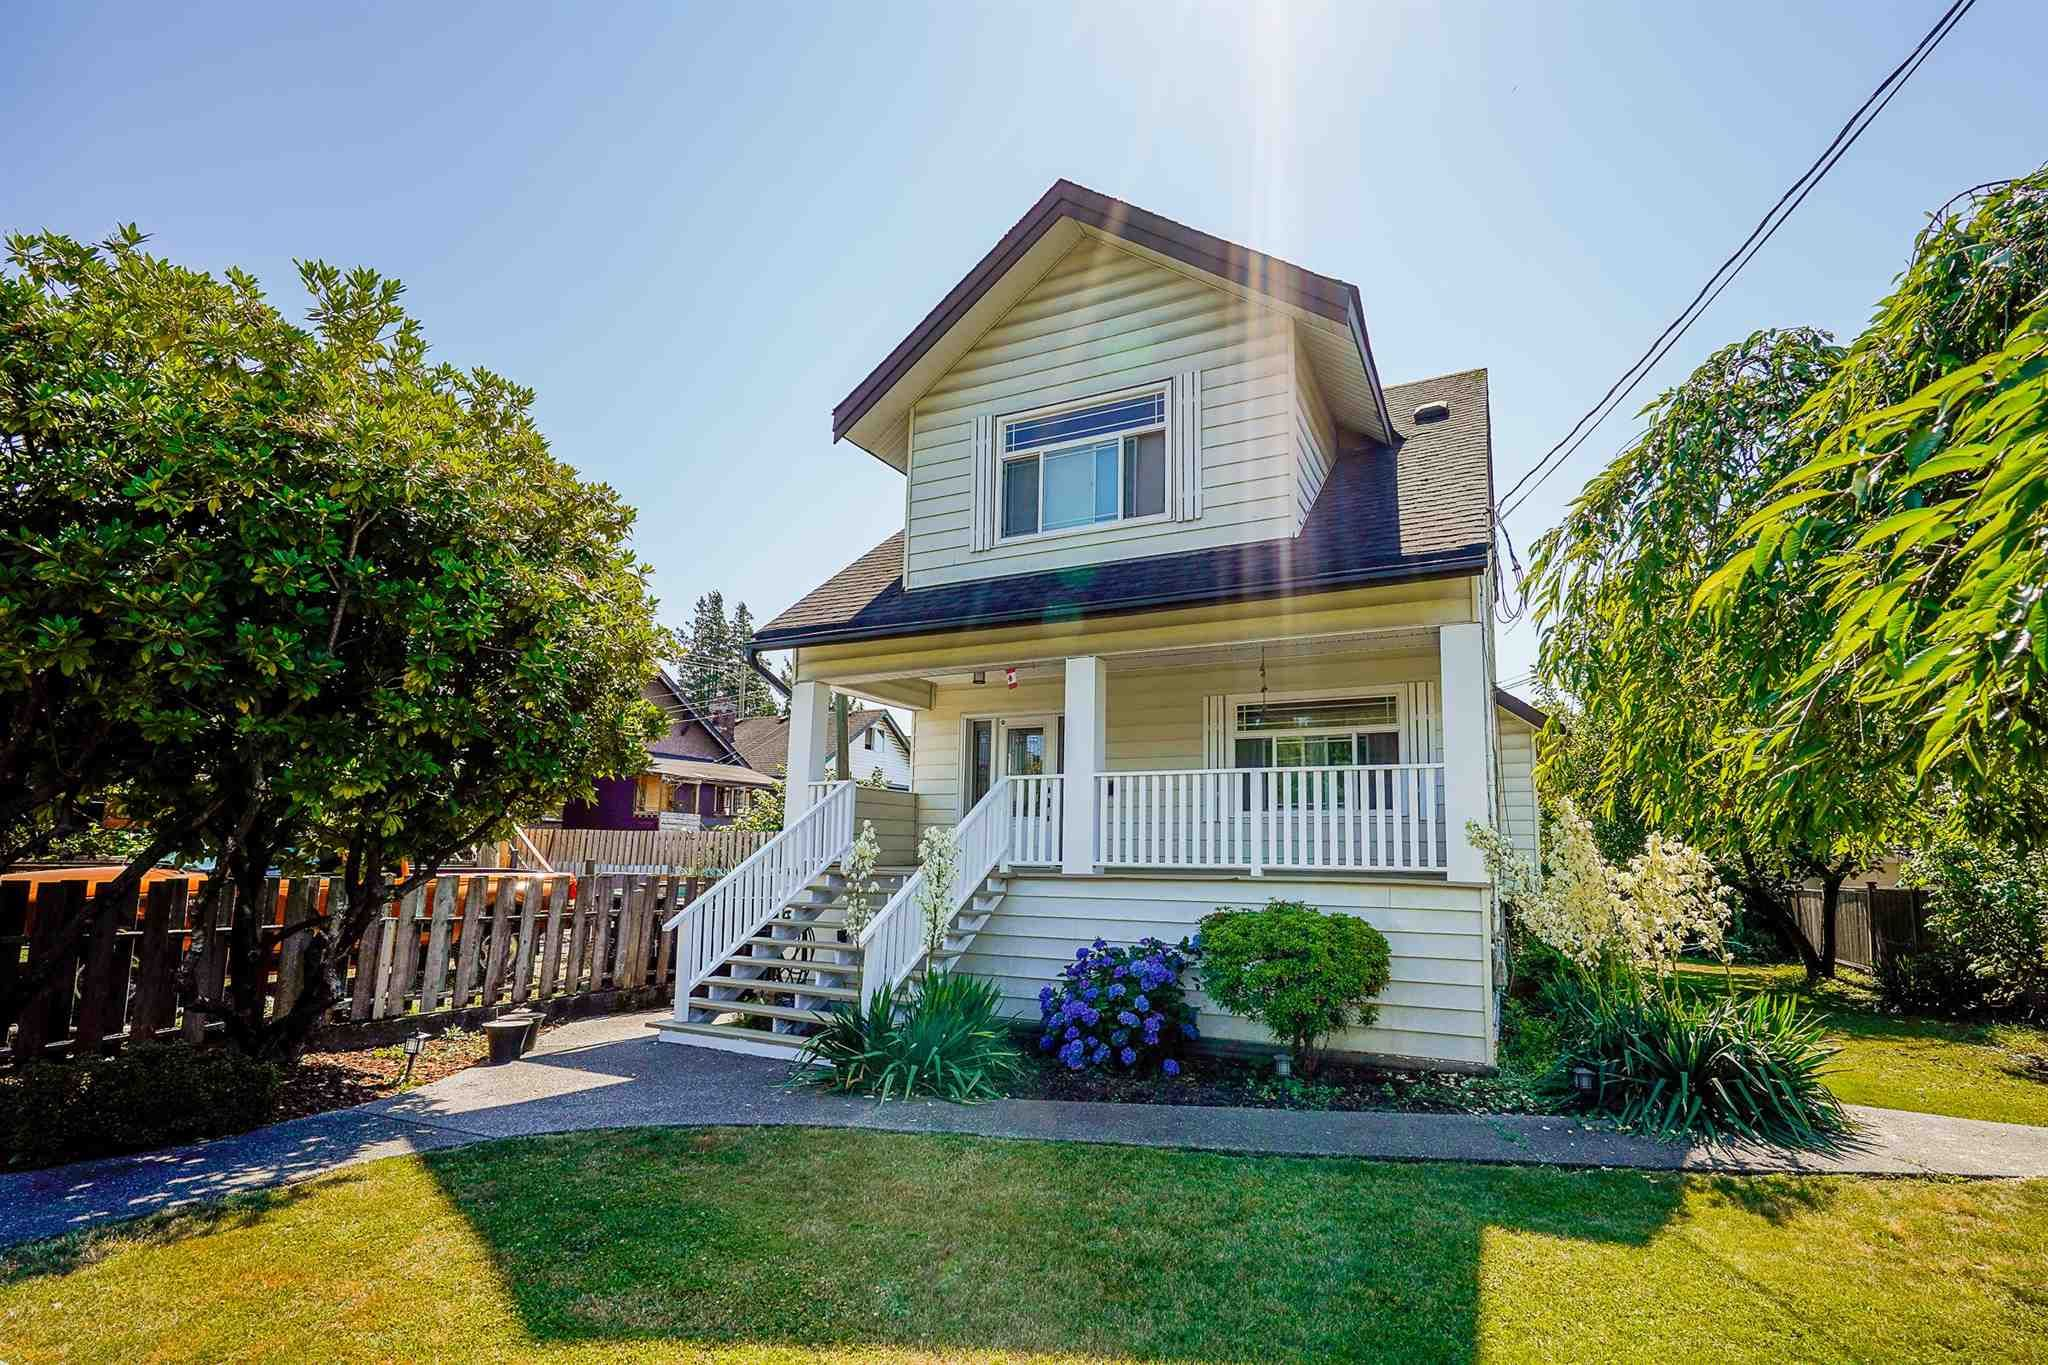 Main Photo: 1004 DUBLIN STREET in New Westminster: Moody Park House for sale : MLS®# R2601230